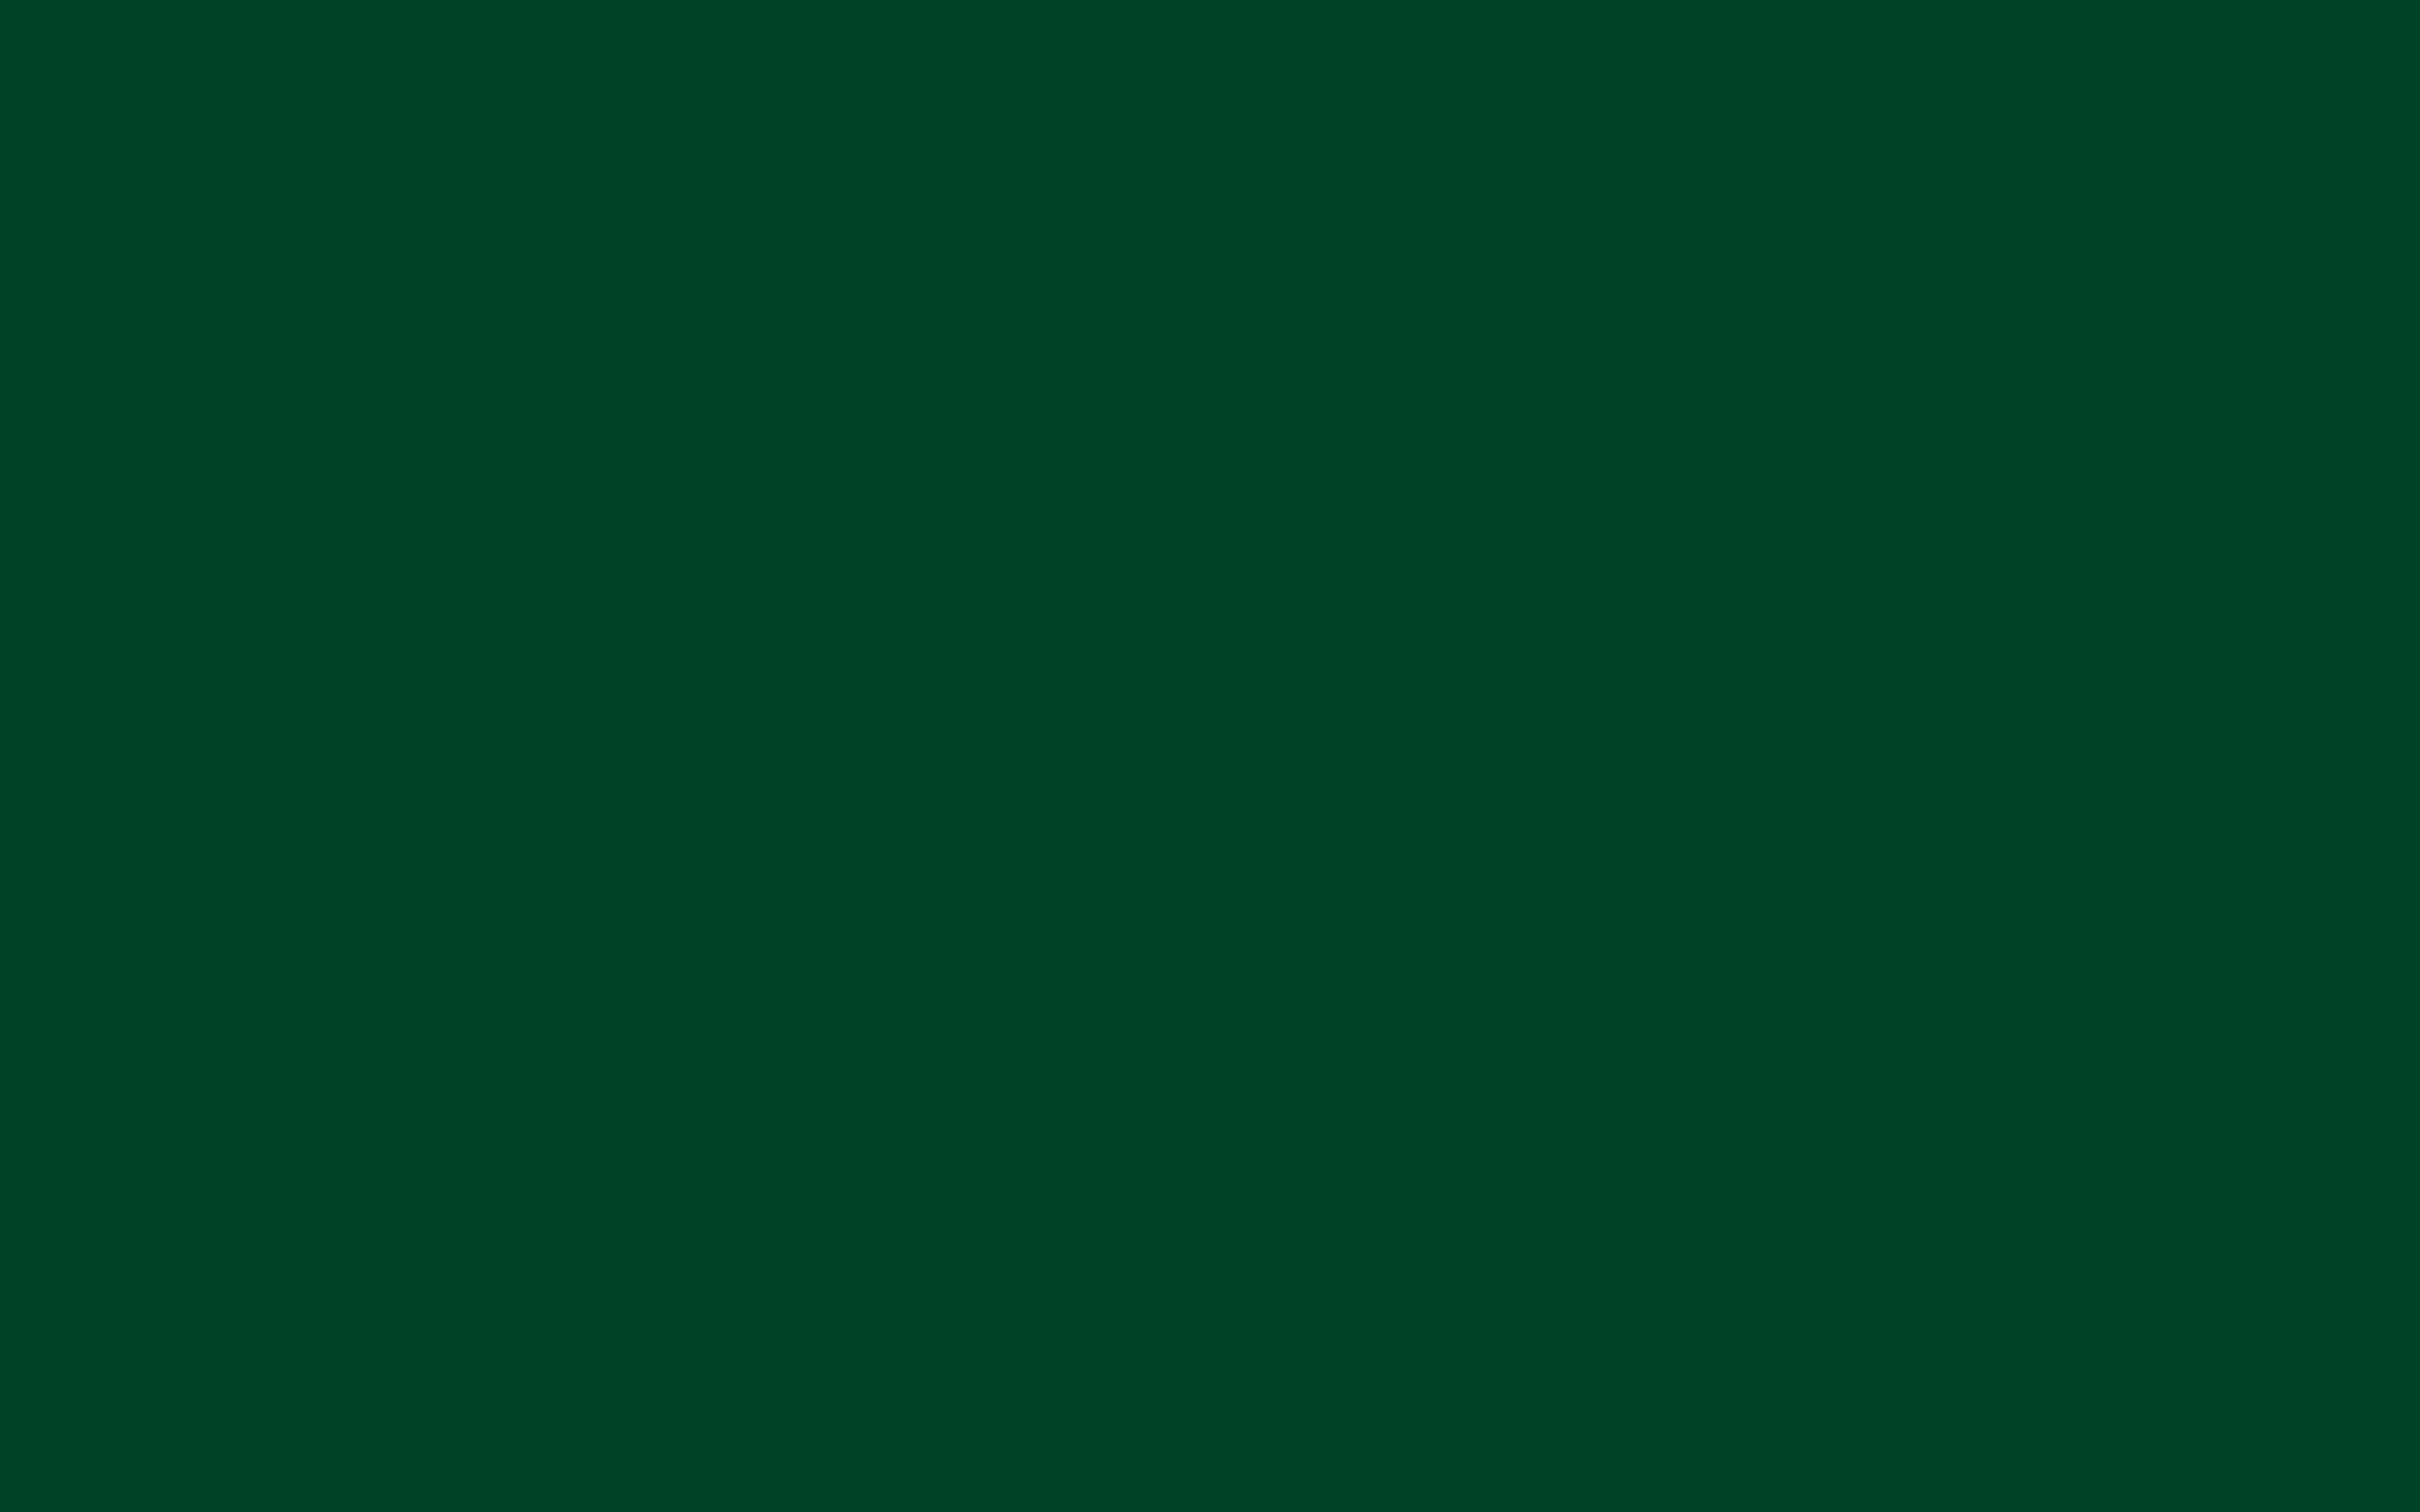 2560x1600 British Racing Green Solid Color Background